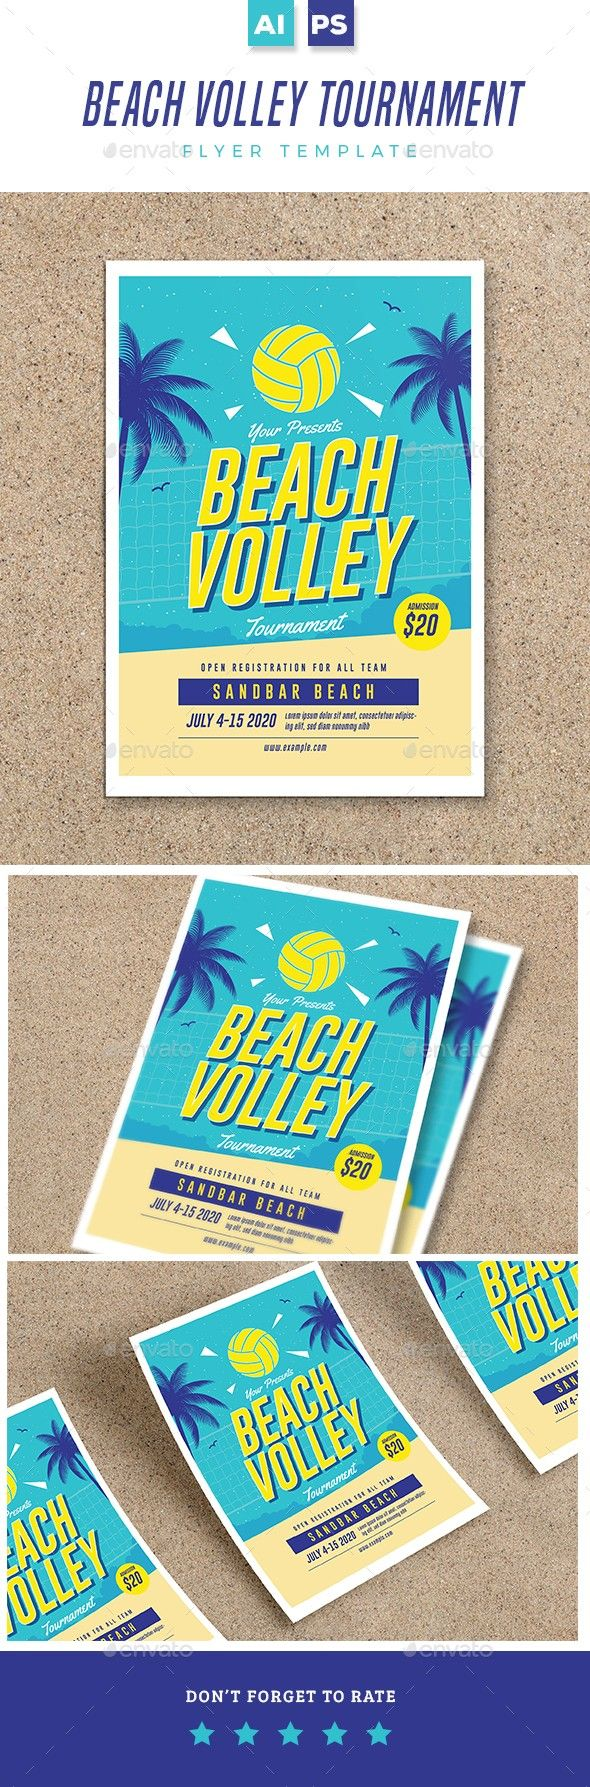 Beach Volleyball Flyer | Pinterest